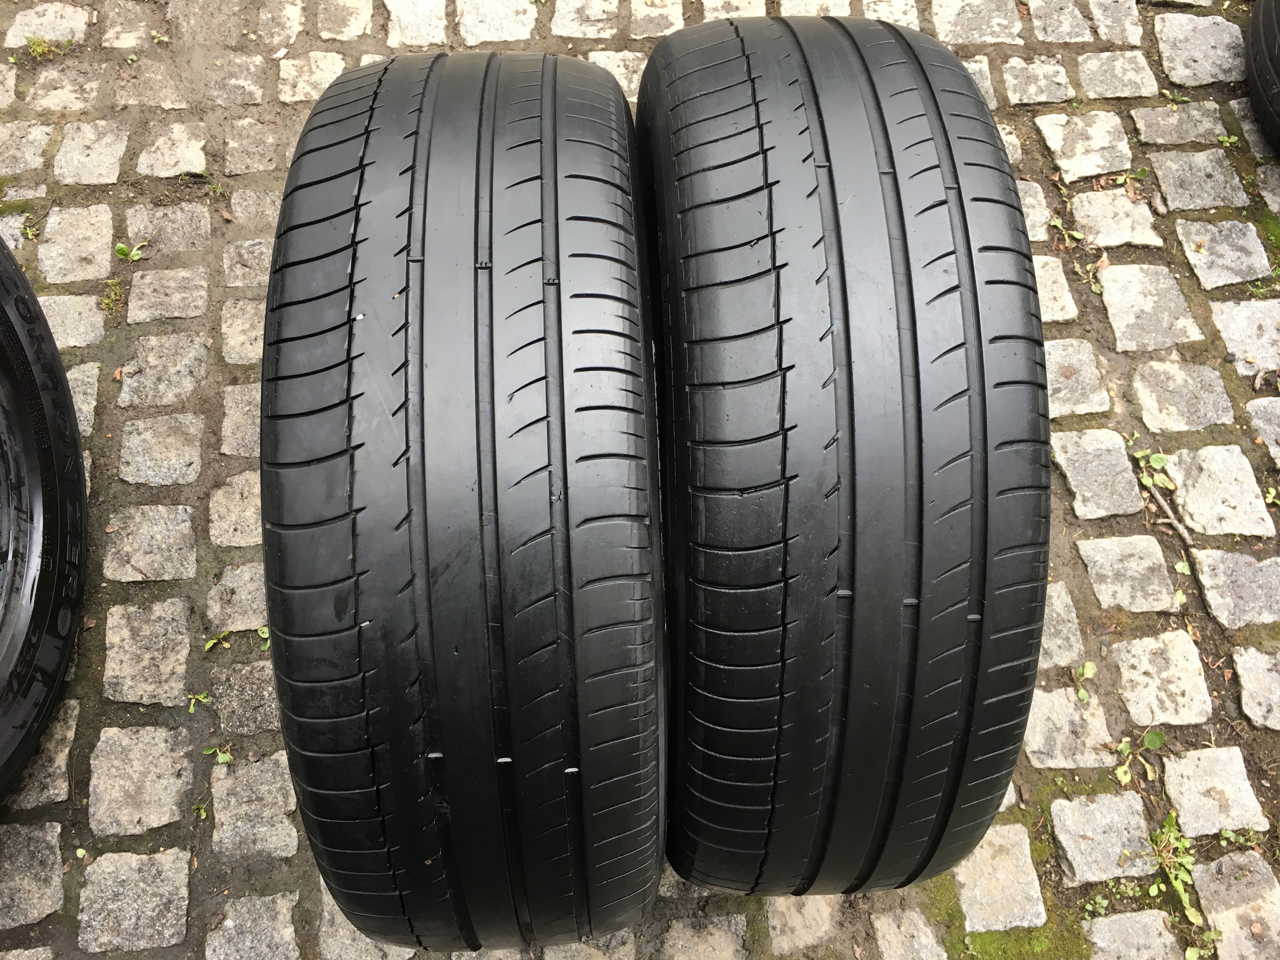 Michelin Latitude sport 255/60/18 100H